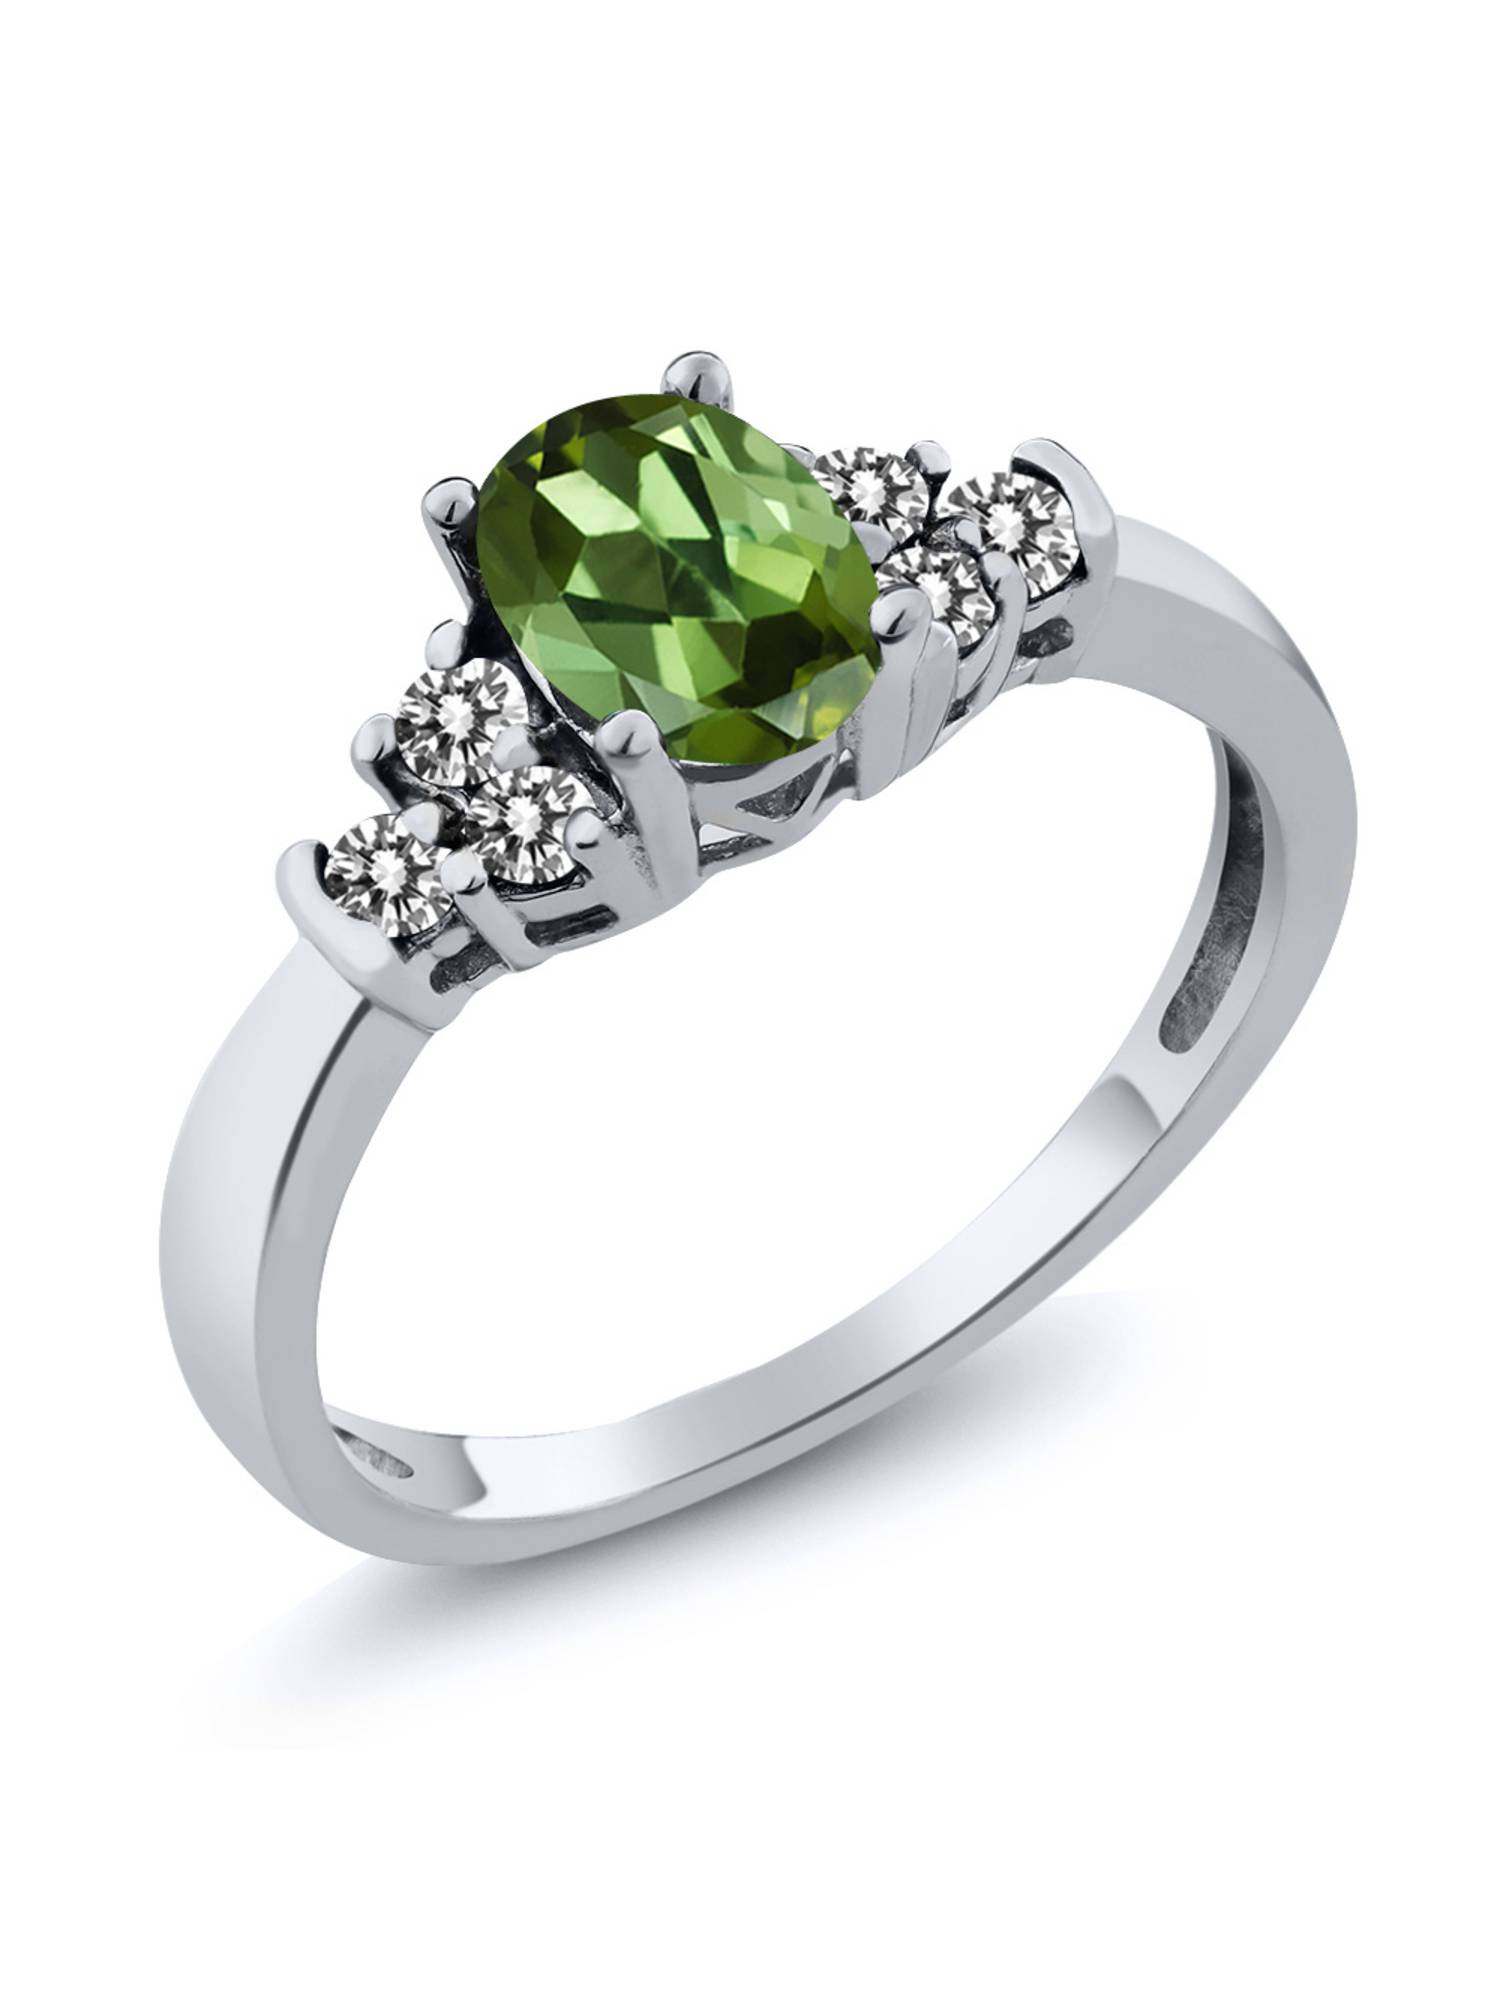 0.60 Ct Oval Green Tourmaline White Diamond 925 Sterling Silver Ring by